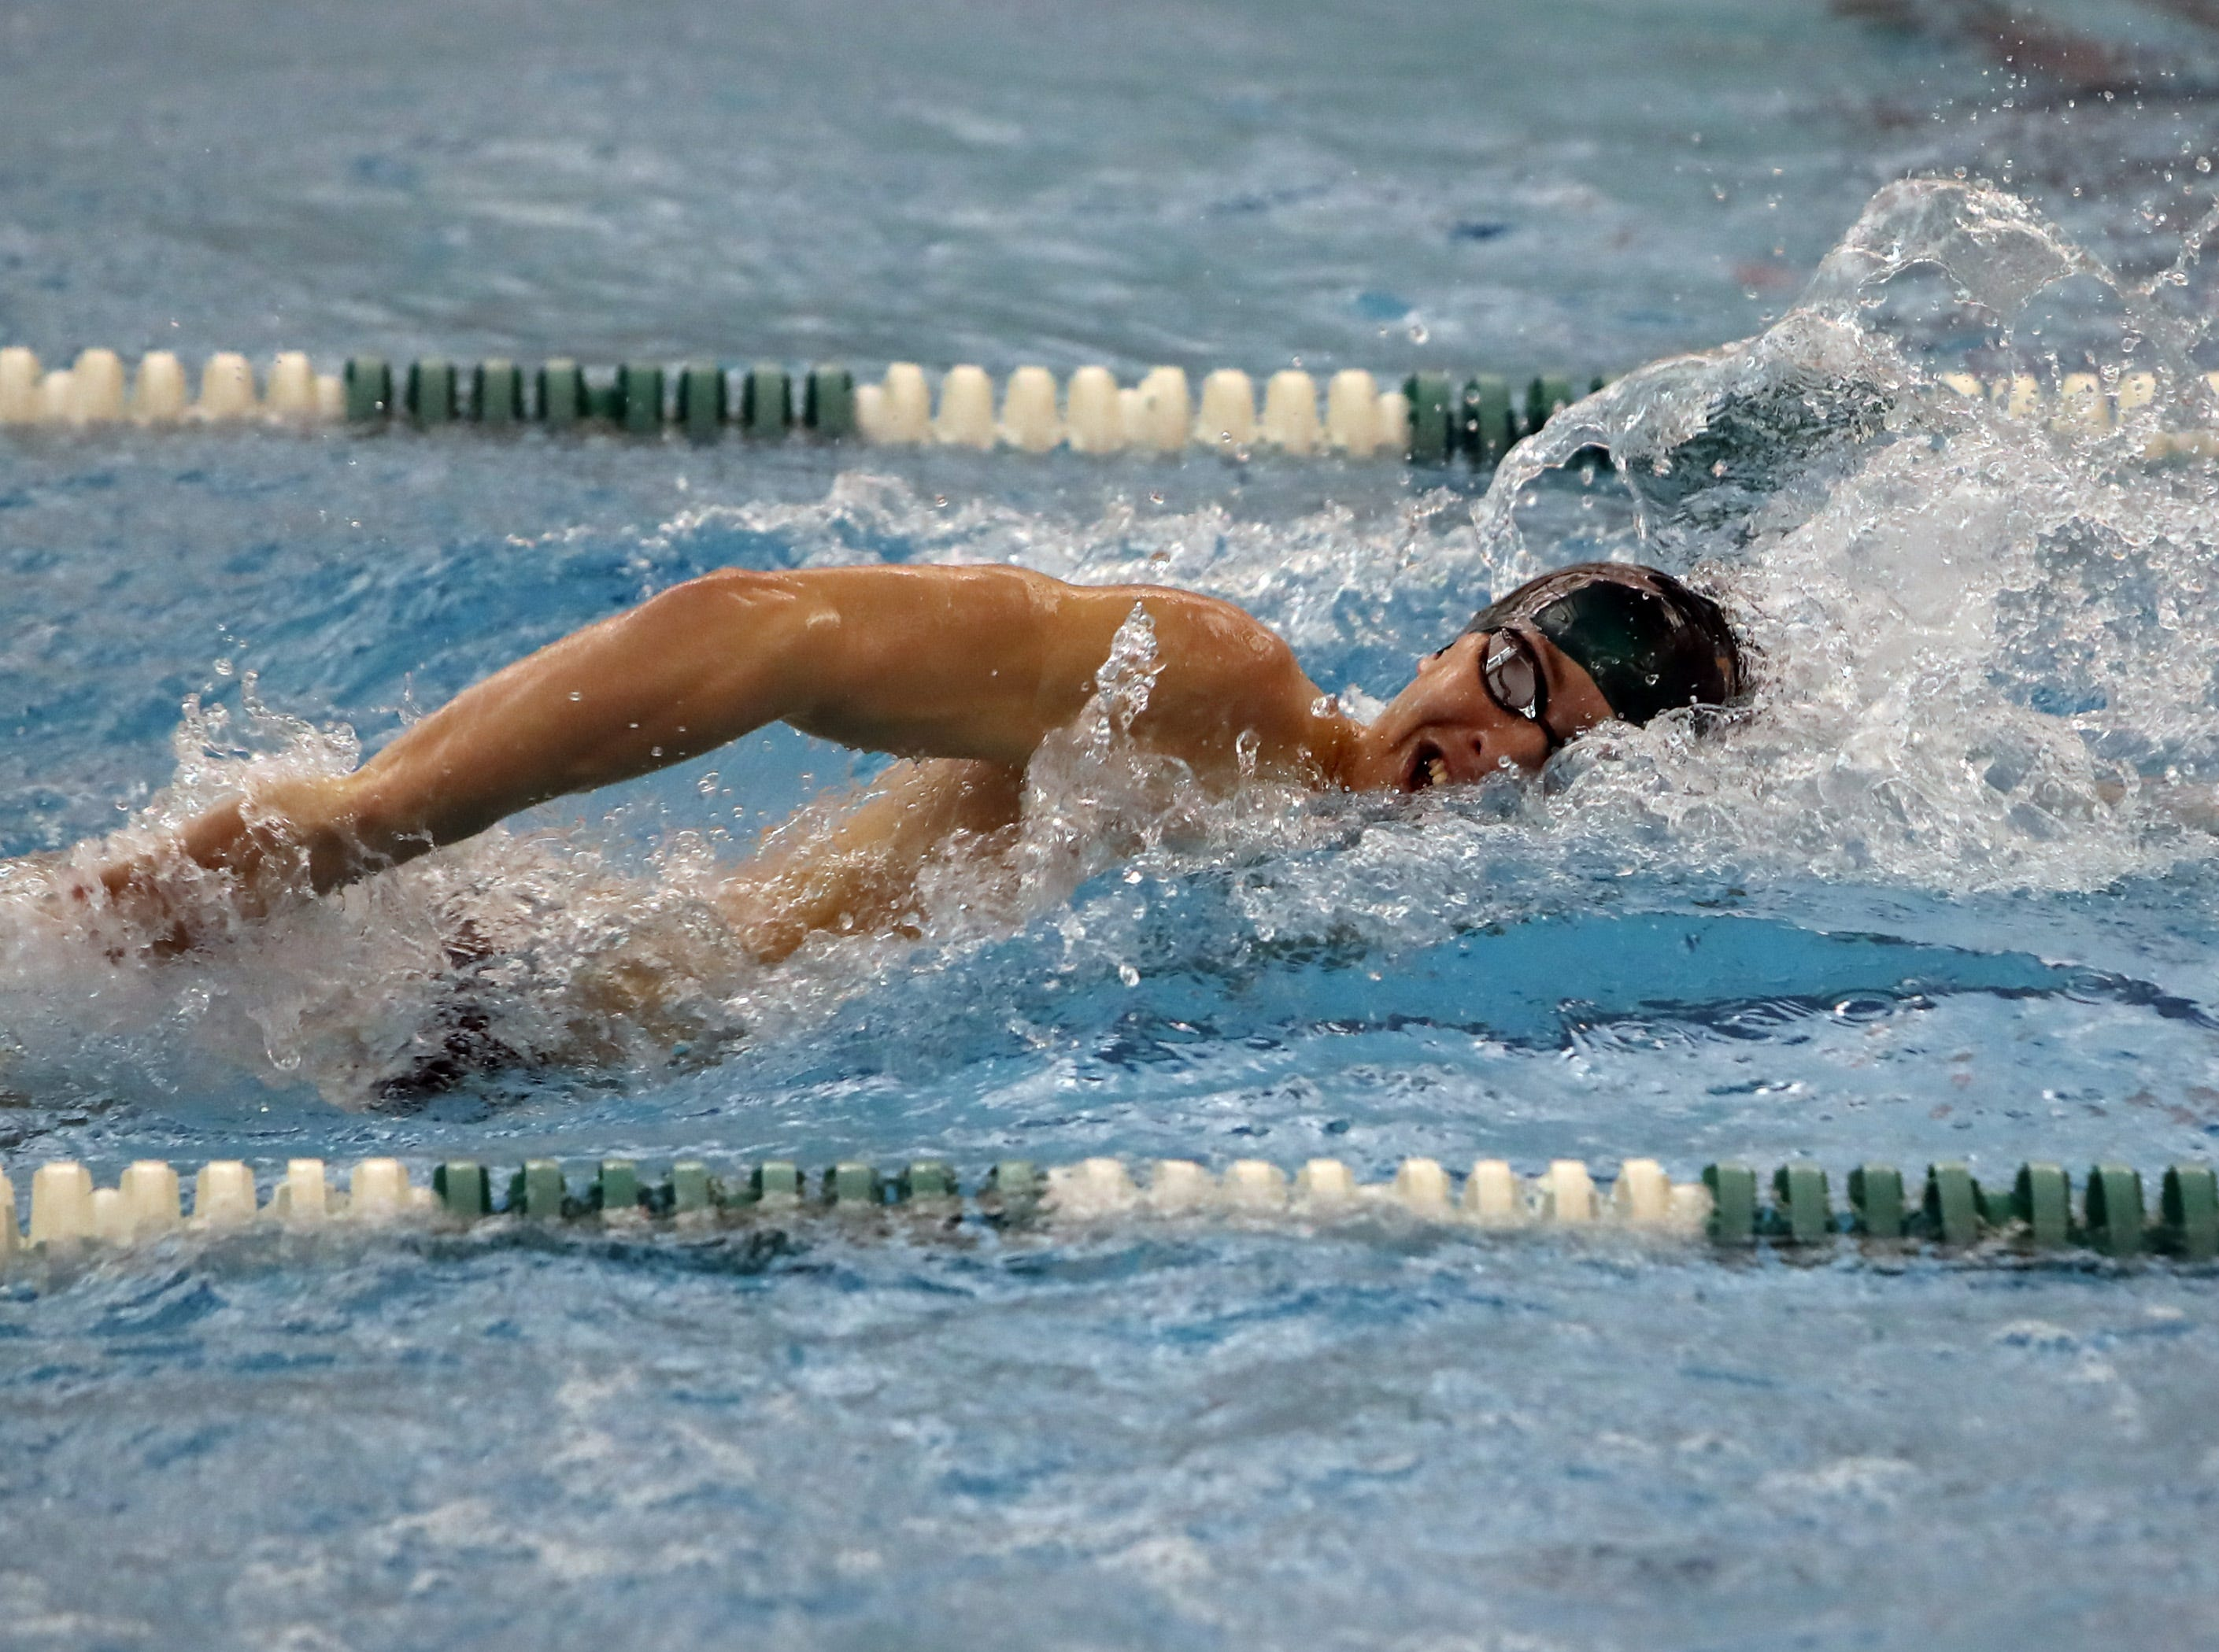 Carson Foster from Sycamore competes in the boys 200 yard freestyle at the Southwest Ohio Swim Classic in Mason, Ohio. Carson finished with a time of 1:37:42.